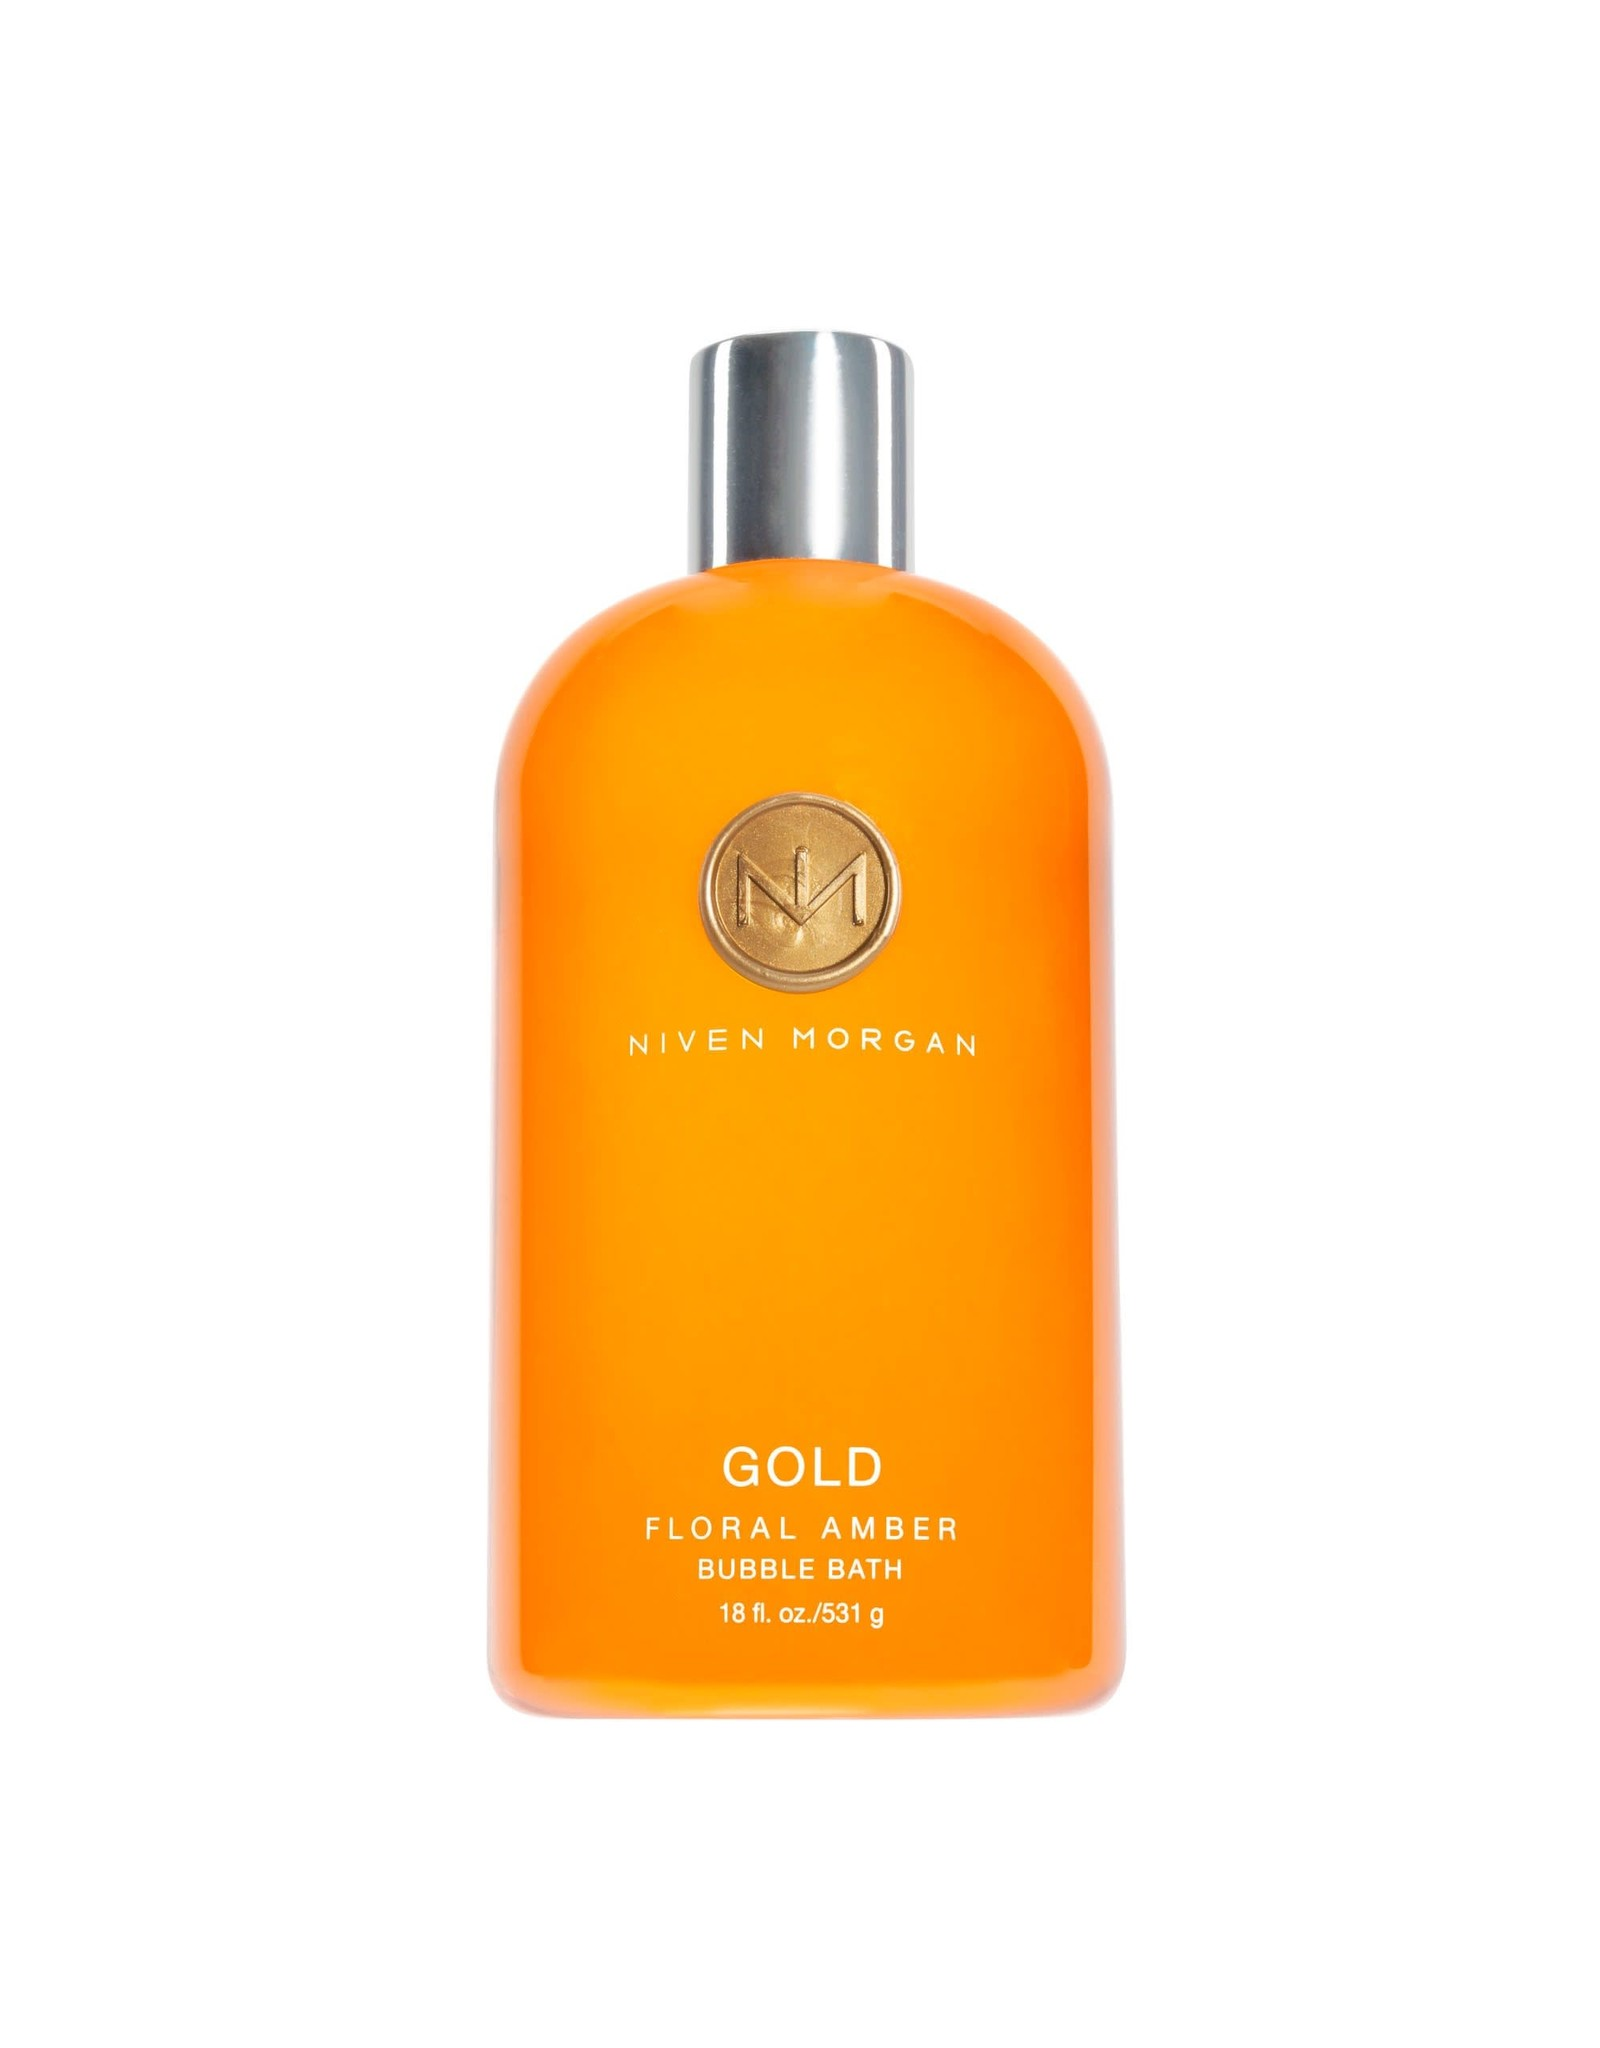 Niven Morgan Niven Morgan Gold Bubble Bath 18oz